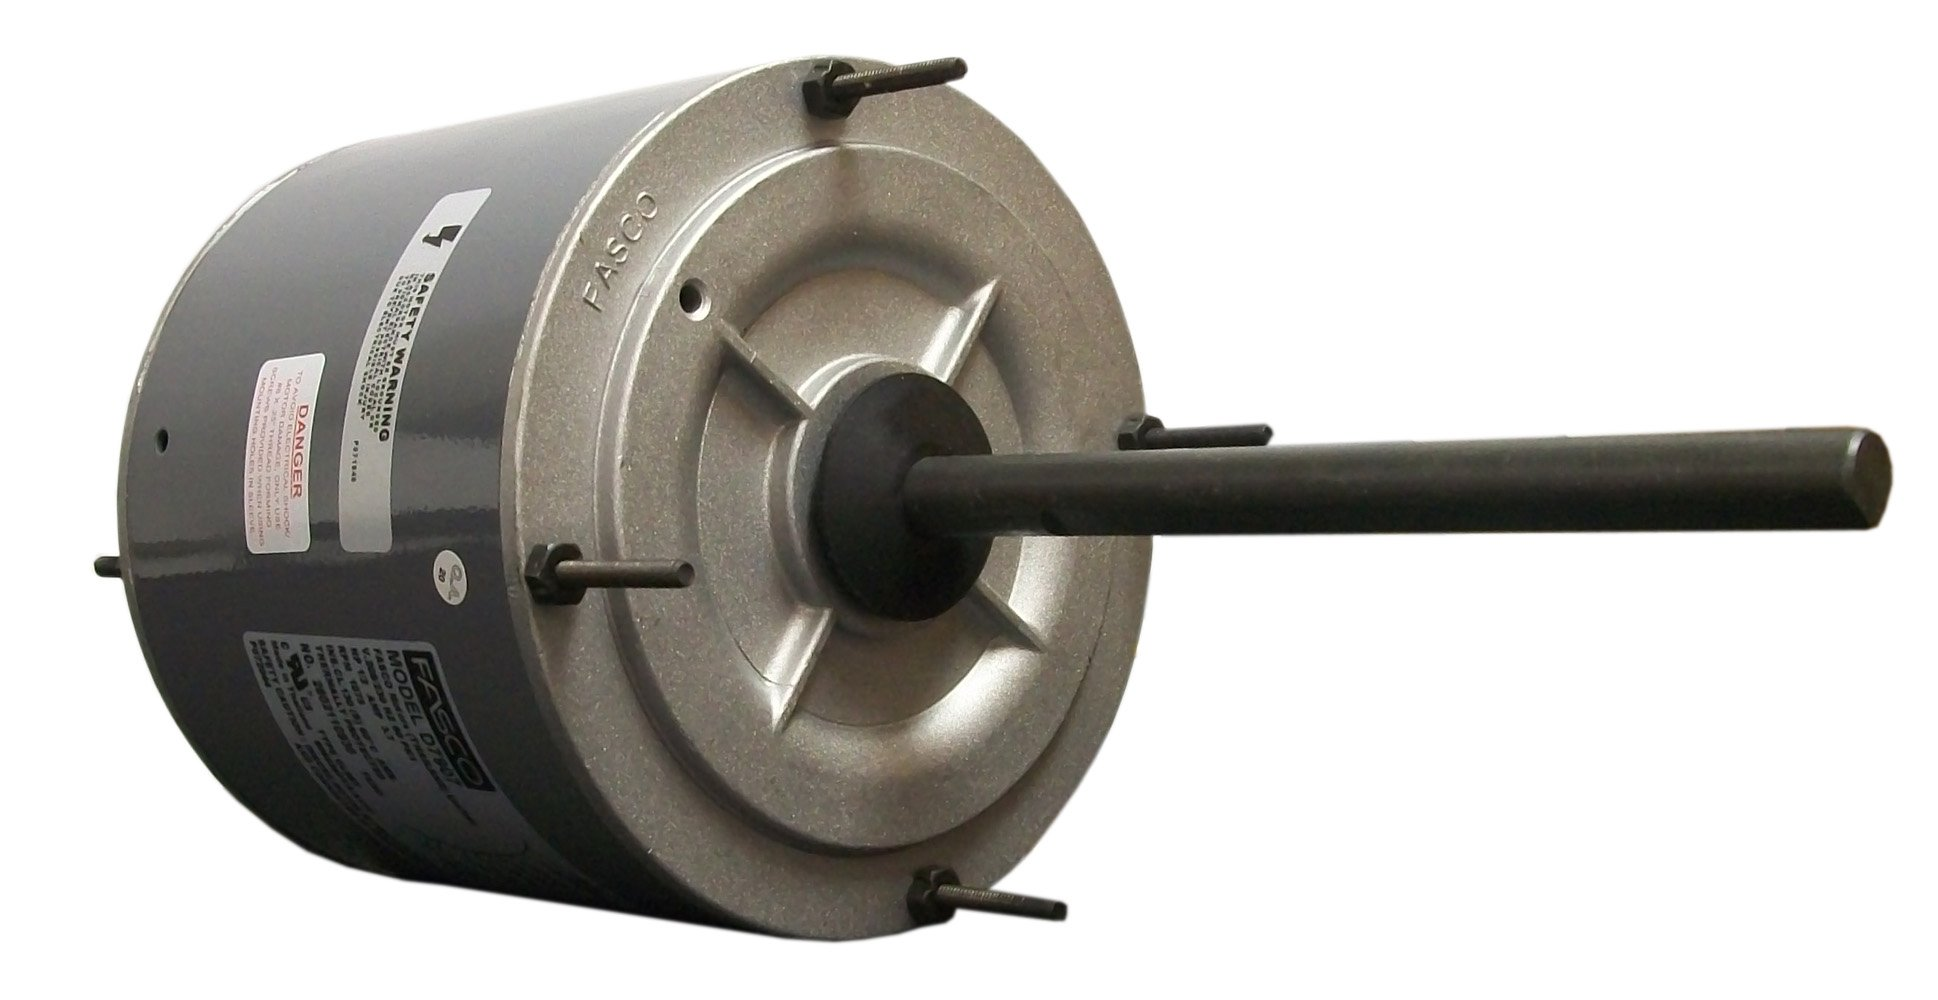 Fasco D7907 5.6-Inch Condenser Fan Motor, 1/2 HP, 208-230 Volts, 1075 RPM, 1 Speed, 3.7 Amps, Totally Enclosed, Reversible Rotation, Ball Bearing